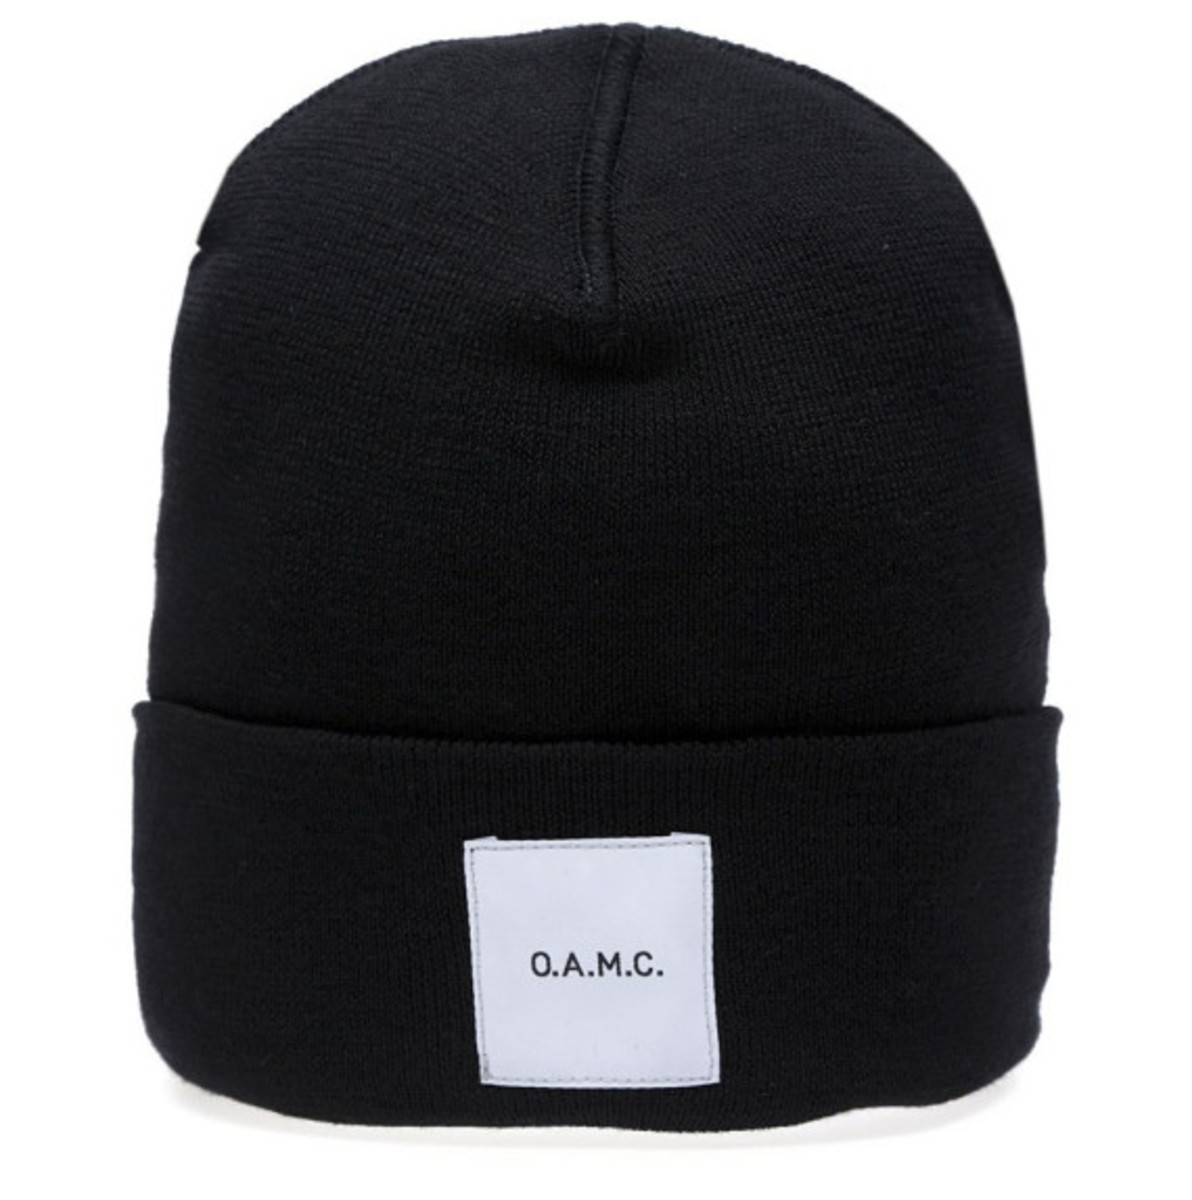 over-all-master-cloth-oamc-fall-winter-2013-collection-available-now-13